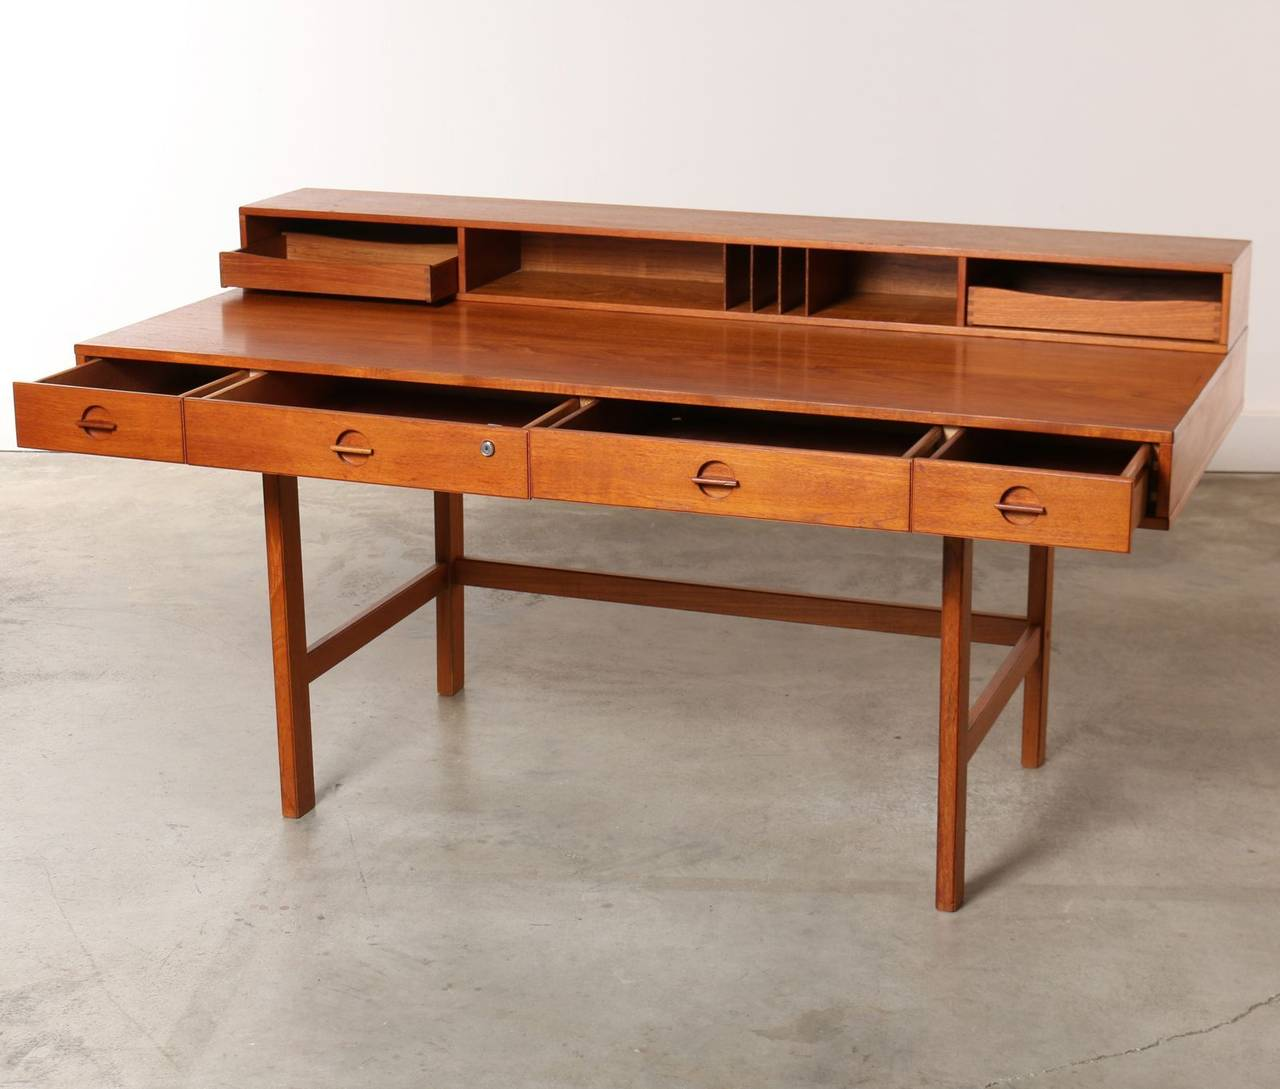 Teak Partners Desk By Jens Quistgaard For Peter Løvig Nielsen 1967 Denmark 3